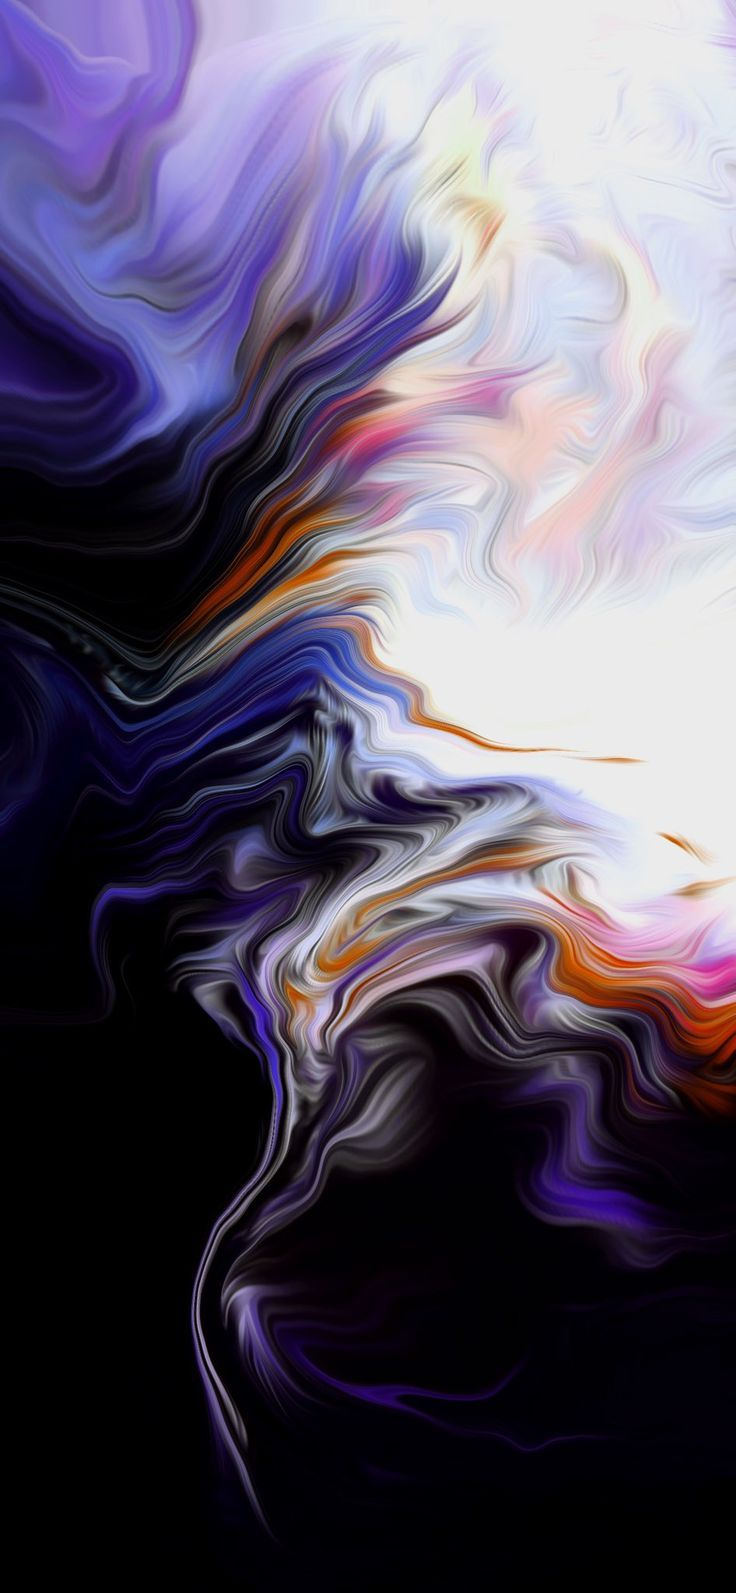 Abstract HD Wallpapers 690739661579604590 1